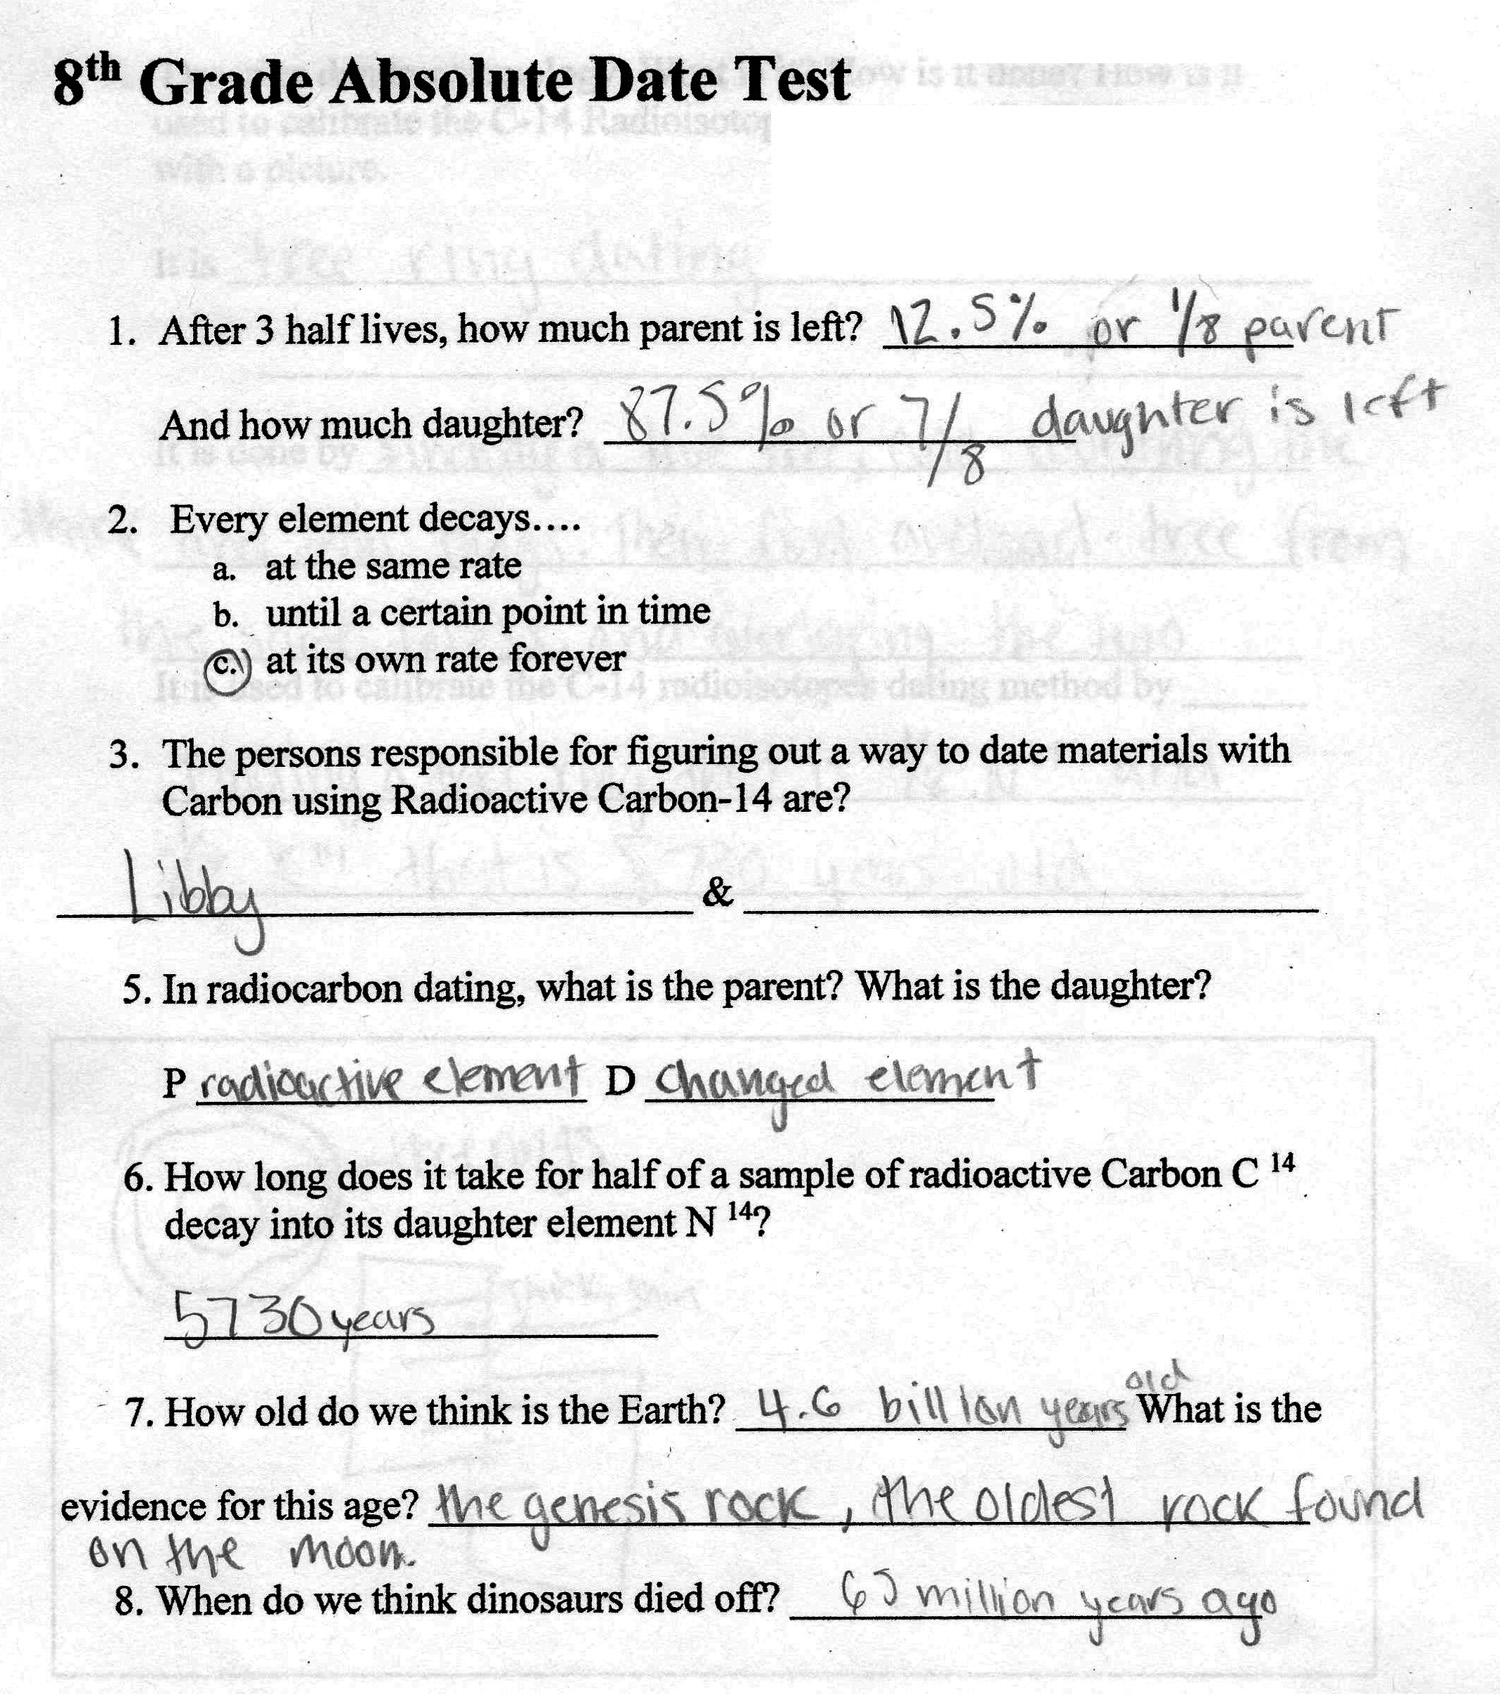 5th grade science essay questions Free 5th grade science practice tests with advanced reporting, full solutions, and progress tracking.